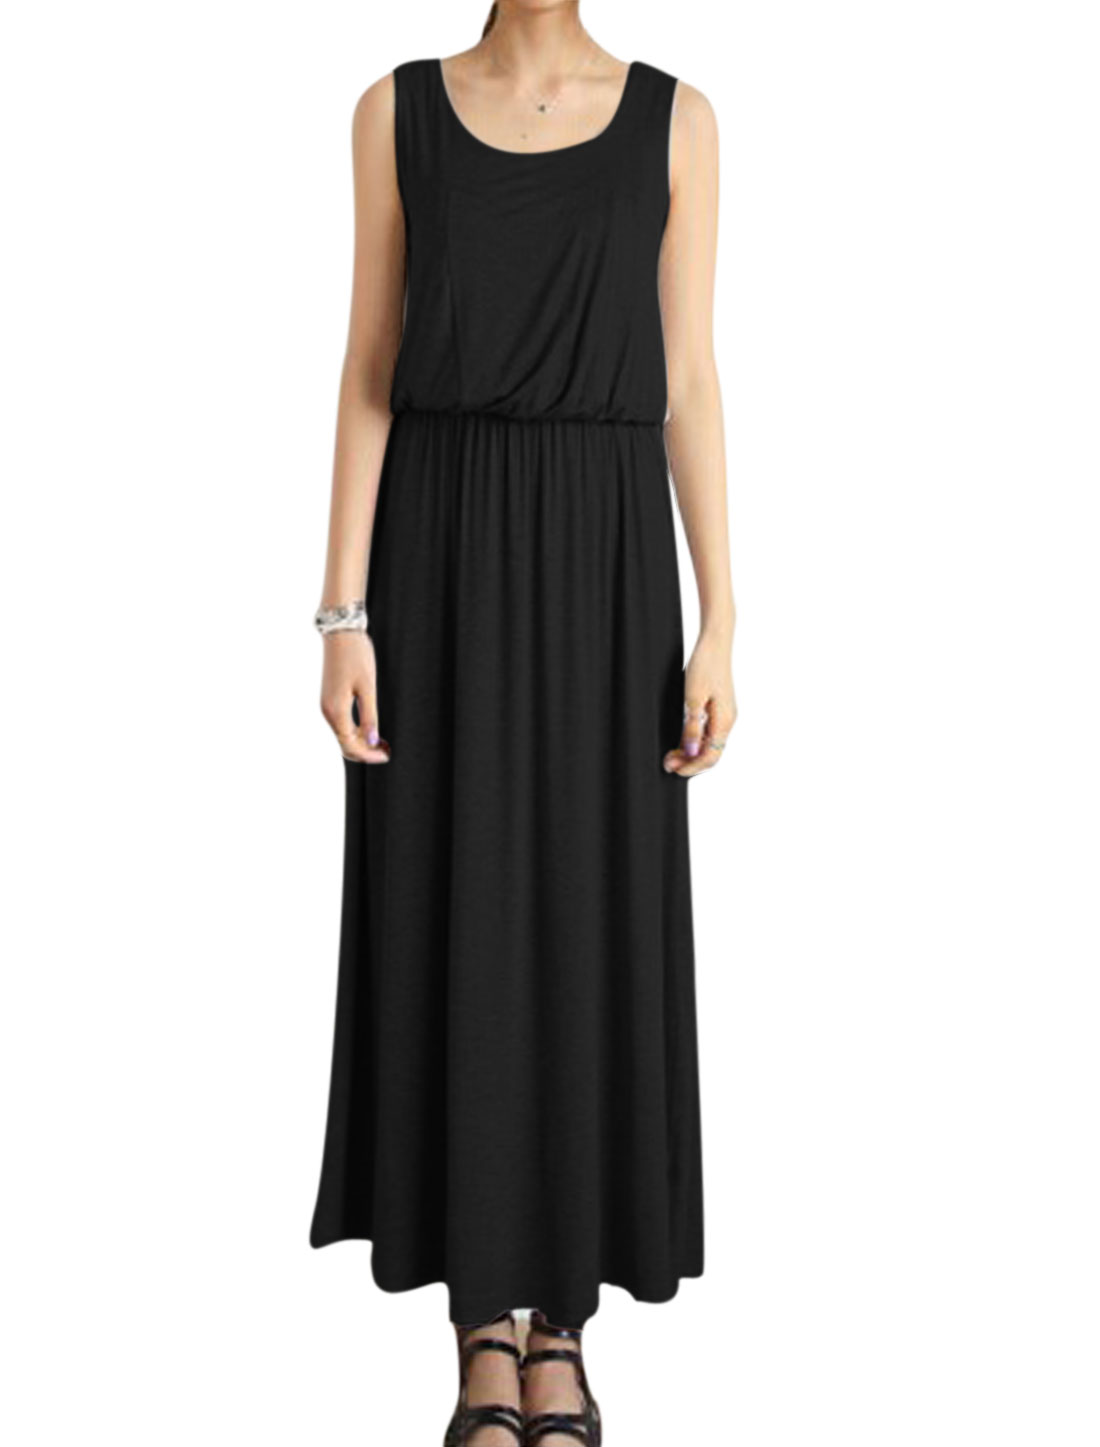 Women Sleeveless Stretchy Waist Unlined Casual Maxi Dress Black XS